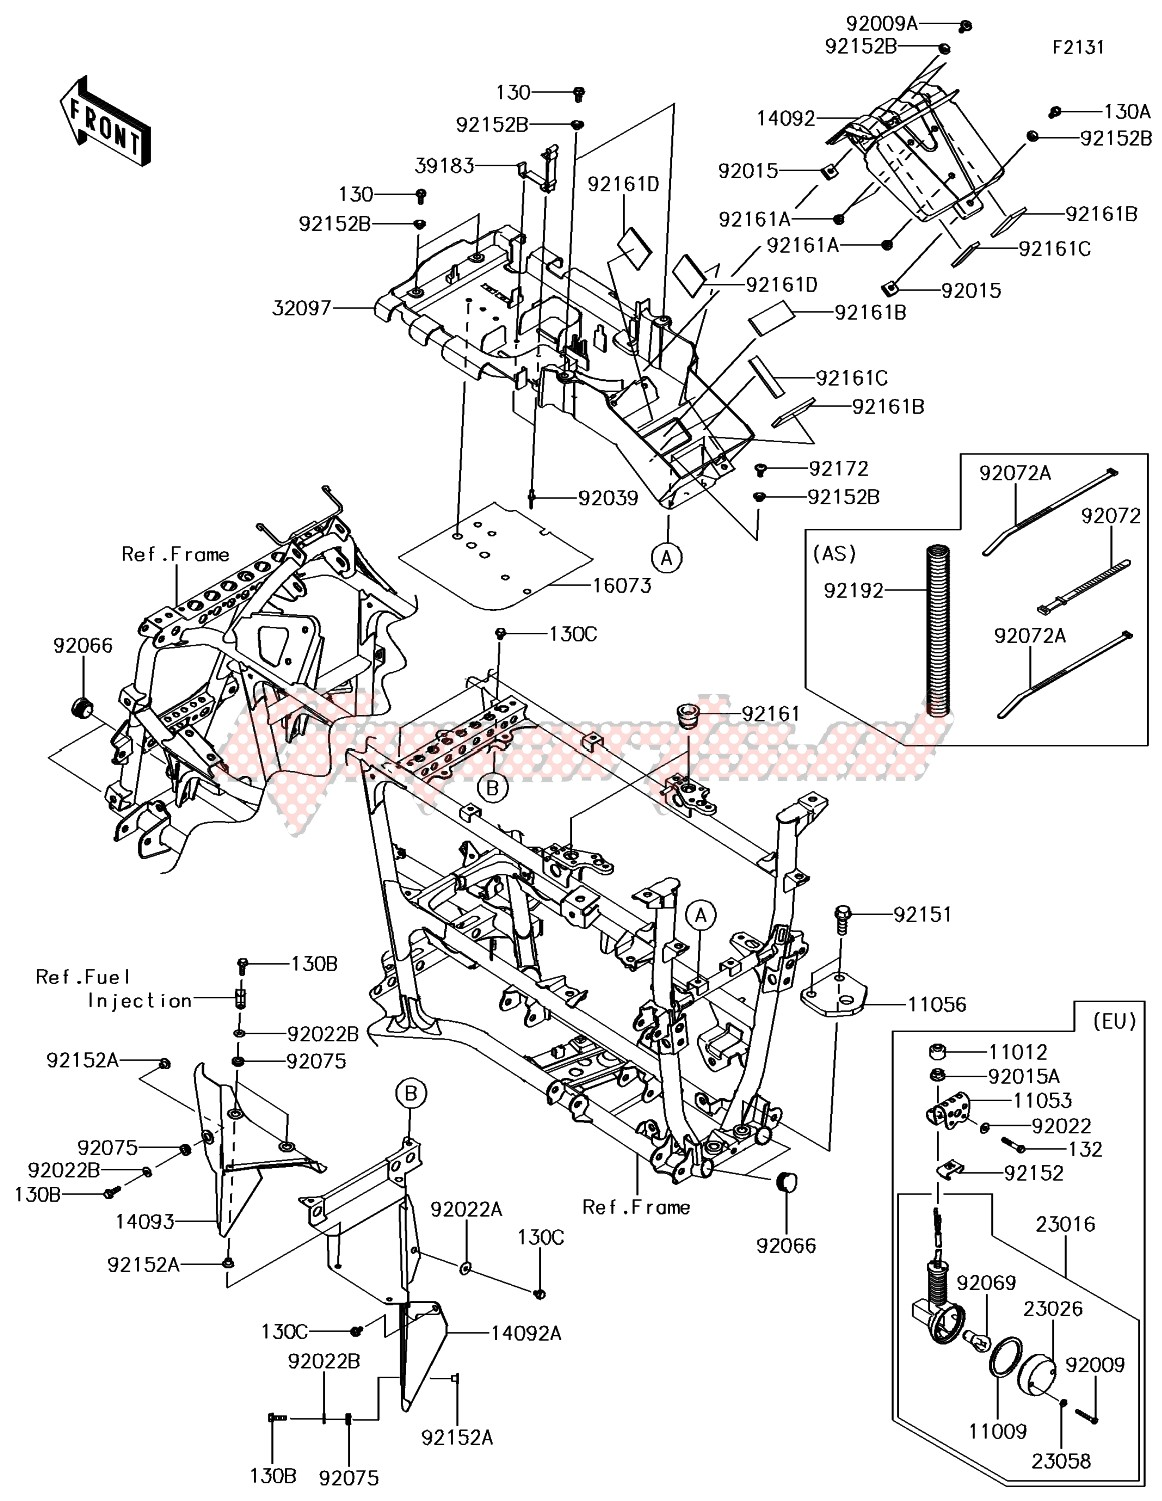 Frame Fittings image